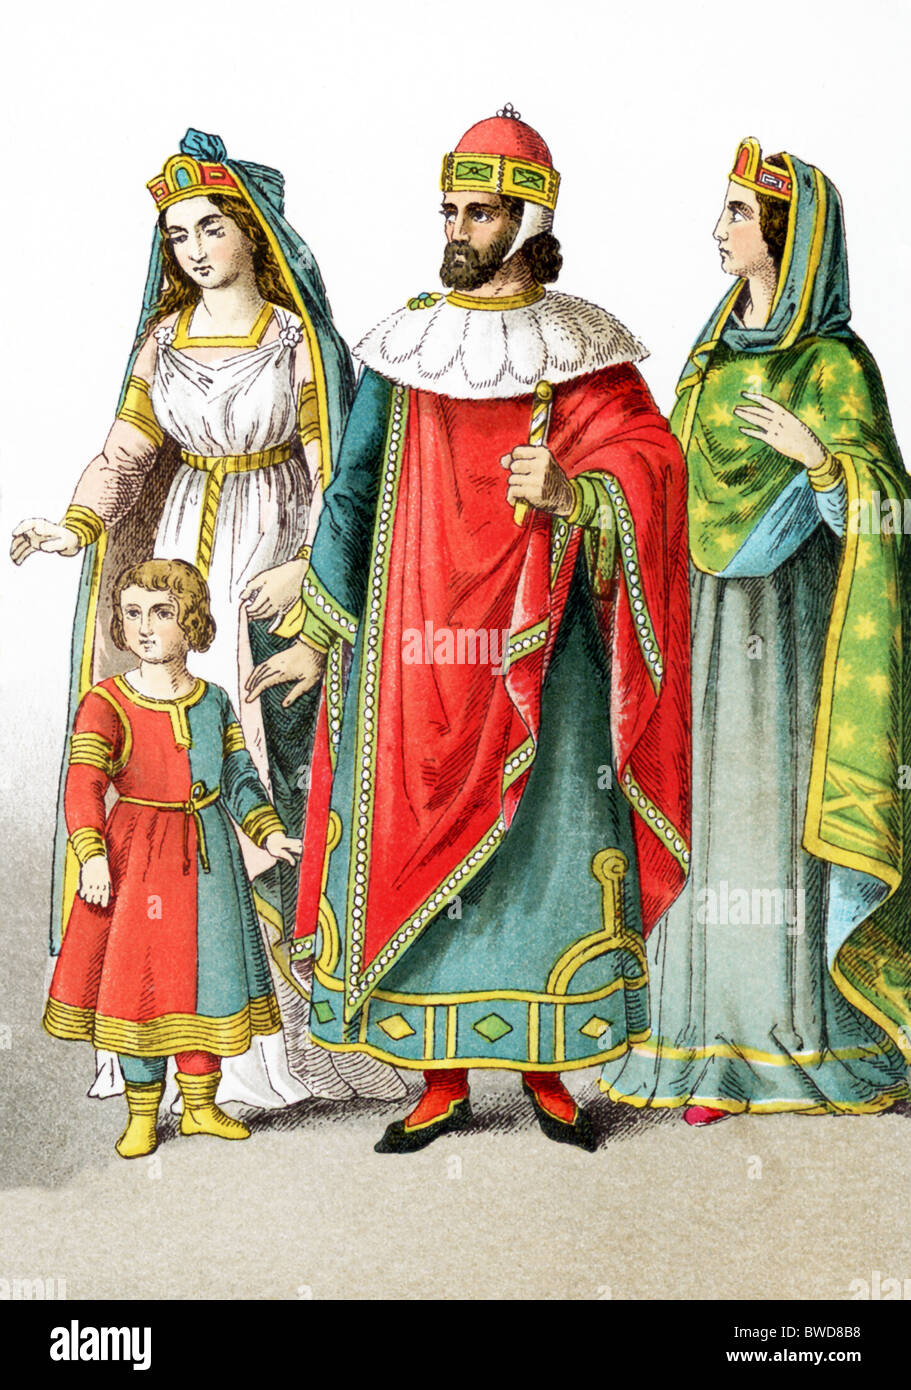 Venetian nobles around A.D. 1200: a Venetian lady of rank with a young boy, a doge of Venice, a Venetian lady of - Stock Image